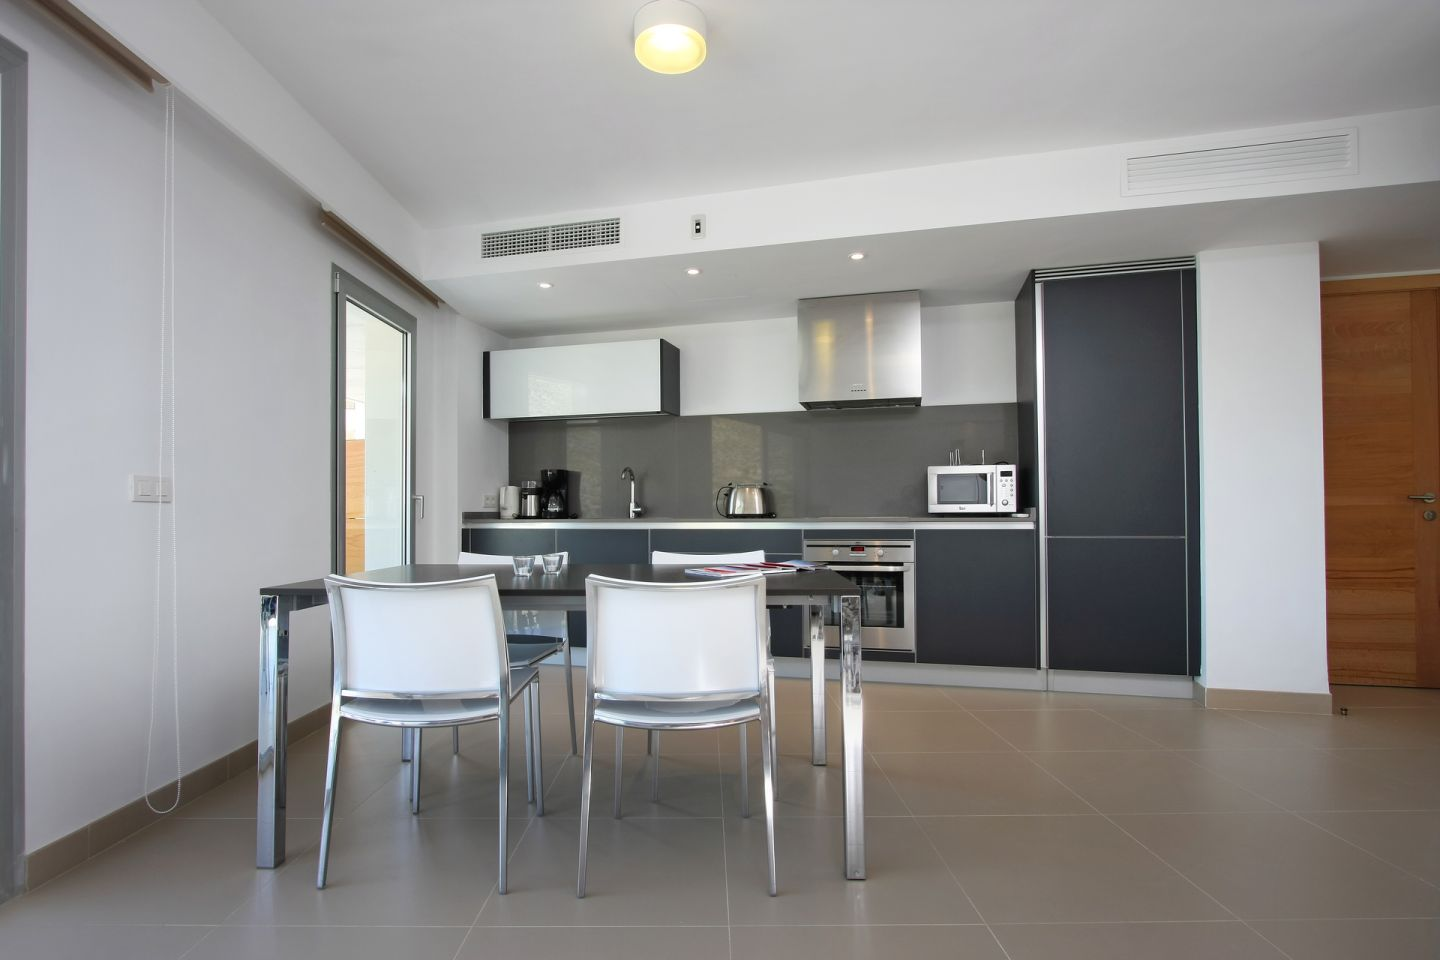 2 Bed Penthouse for sale in Cala San Vicente 7